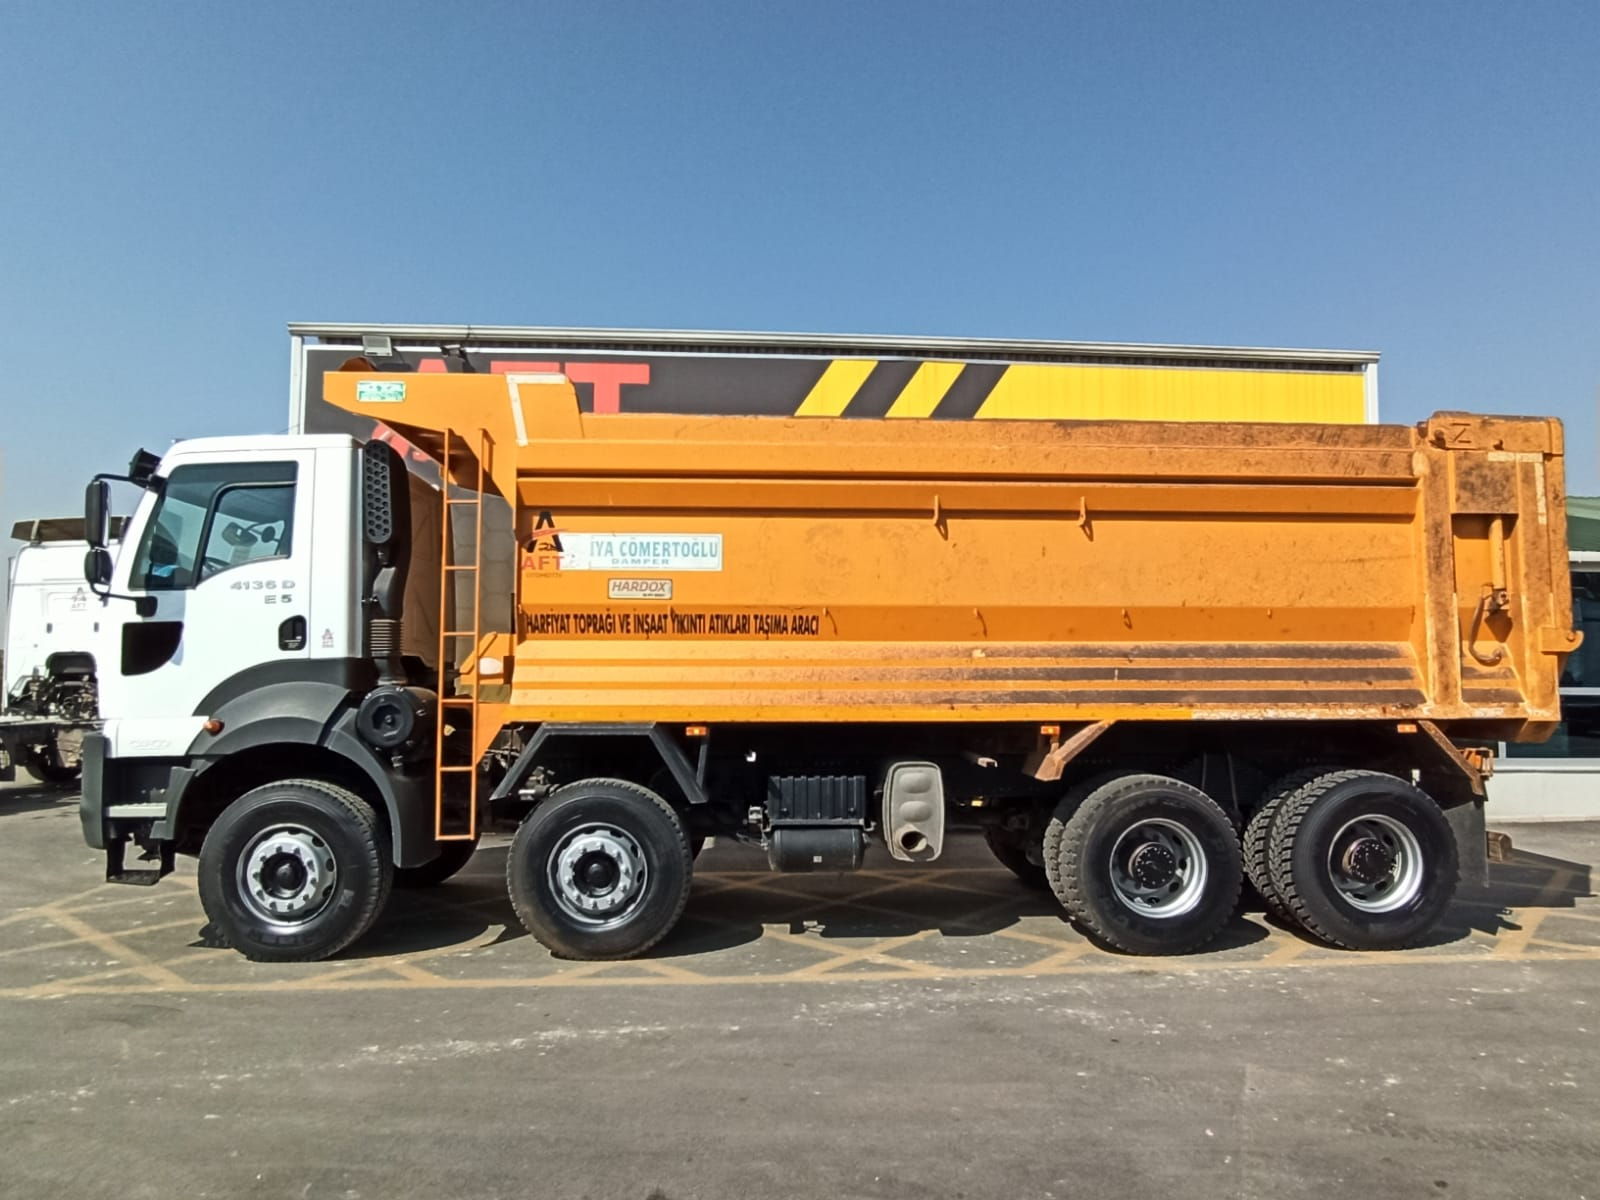 2016 MODEL FORD CARGO 4136 D E5 AC 8X4 HARDOX TIPPER  - Erçal Trucks